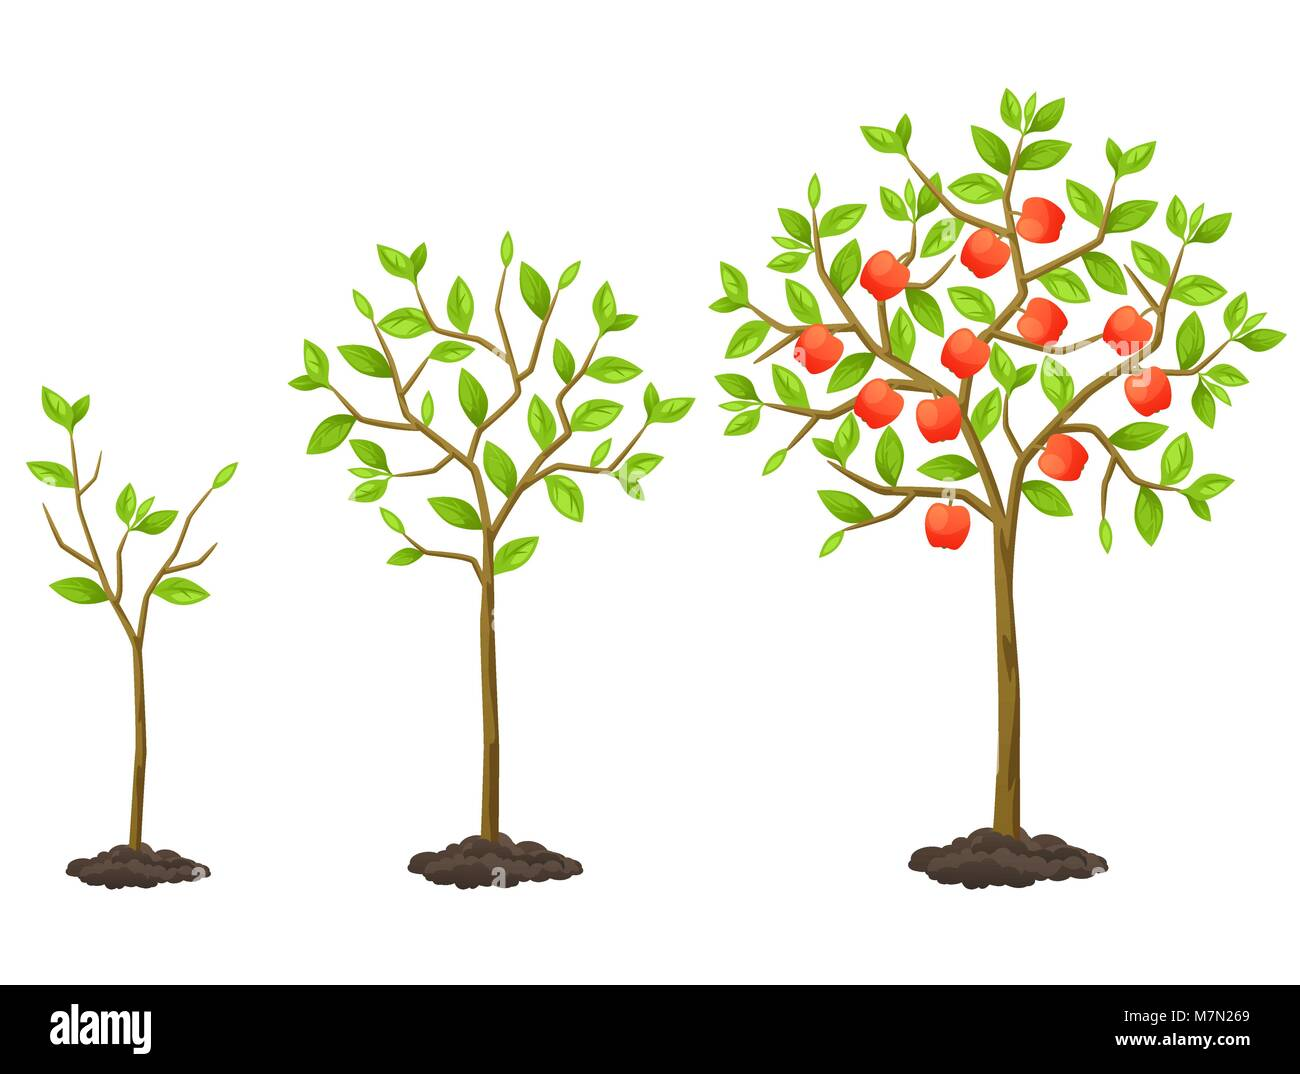 Growth cycle from seedling to fruit tree. Illustration for agricultural booklets, flyers garden - Stock Vector